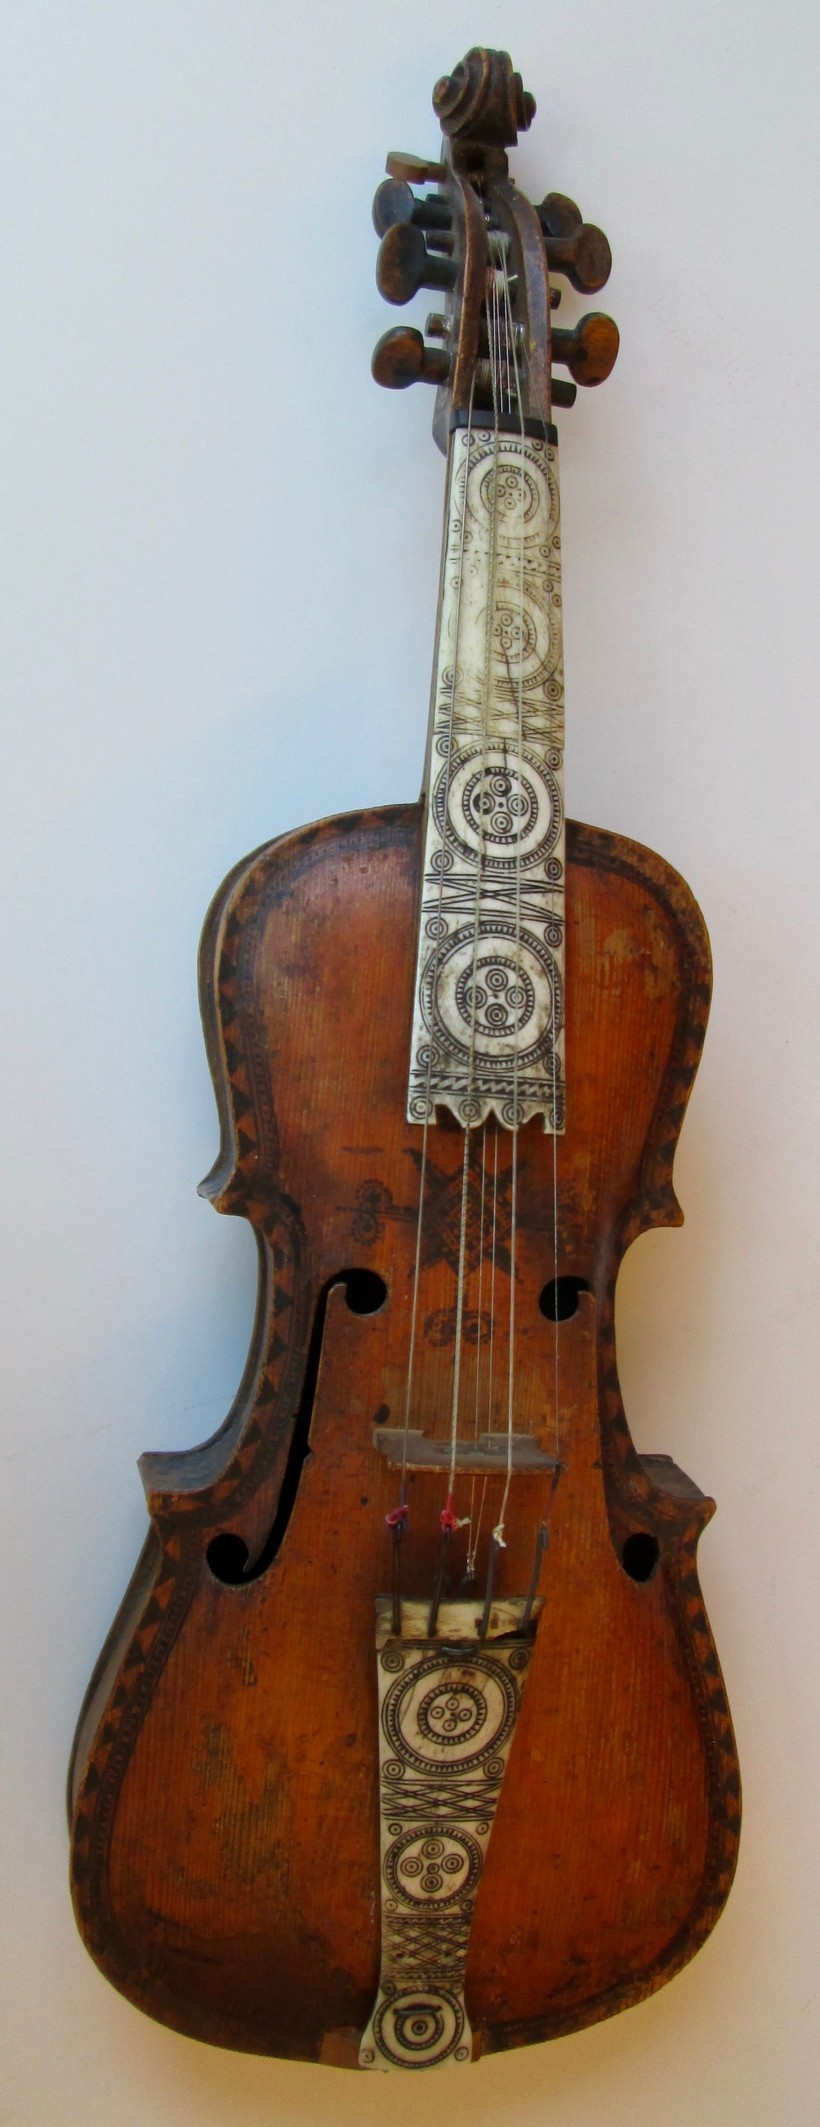 Hardanger Fiddle from the Hardanger Folk Museum collection